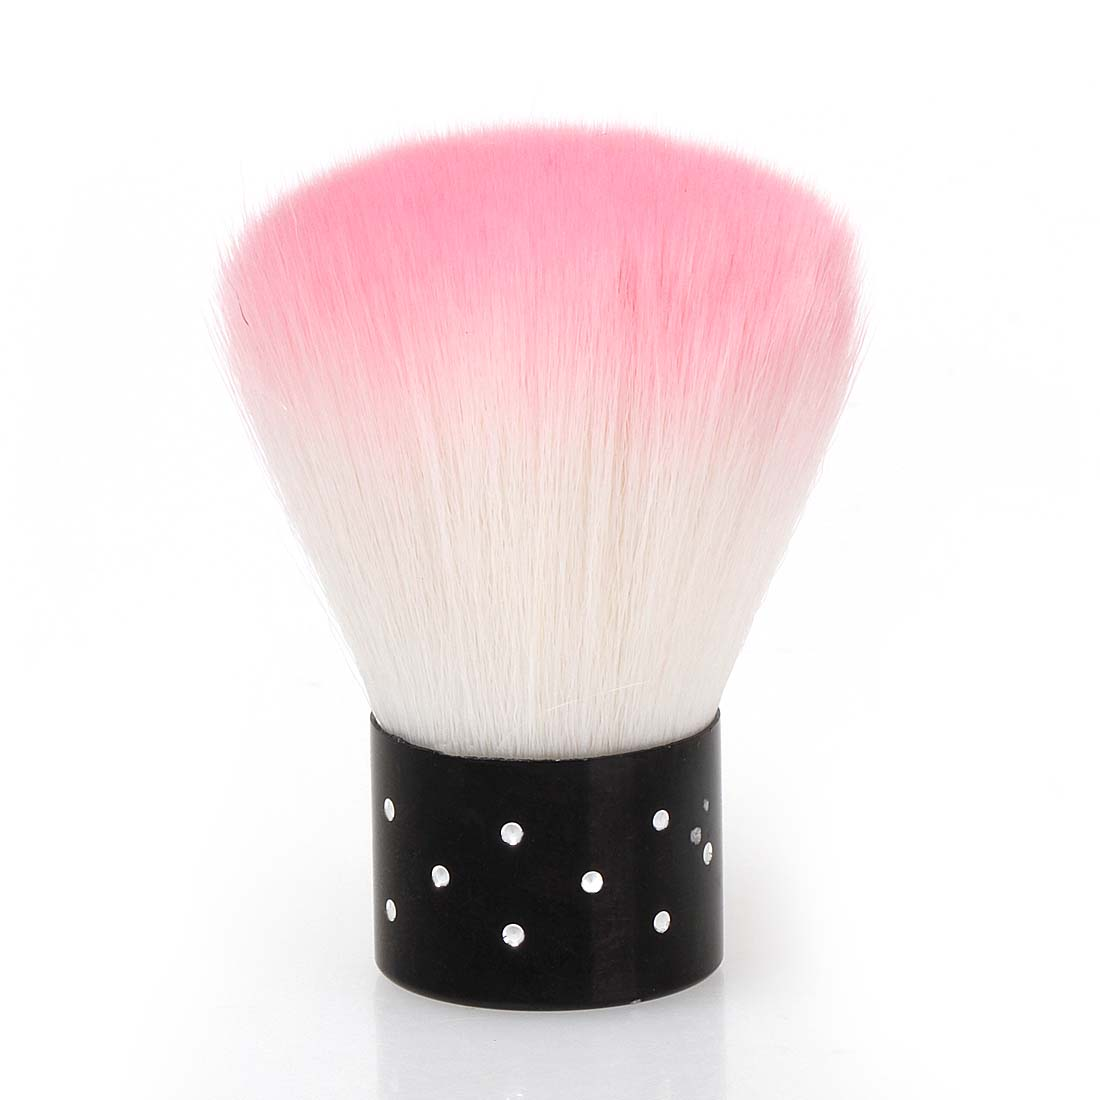 Bmc pink colored synthetic fiber acrylic manicure dusting brush nail art tool